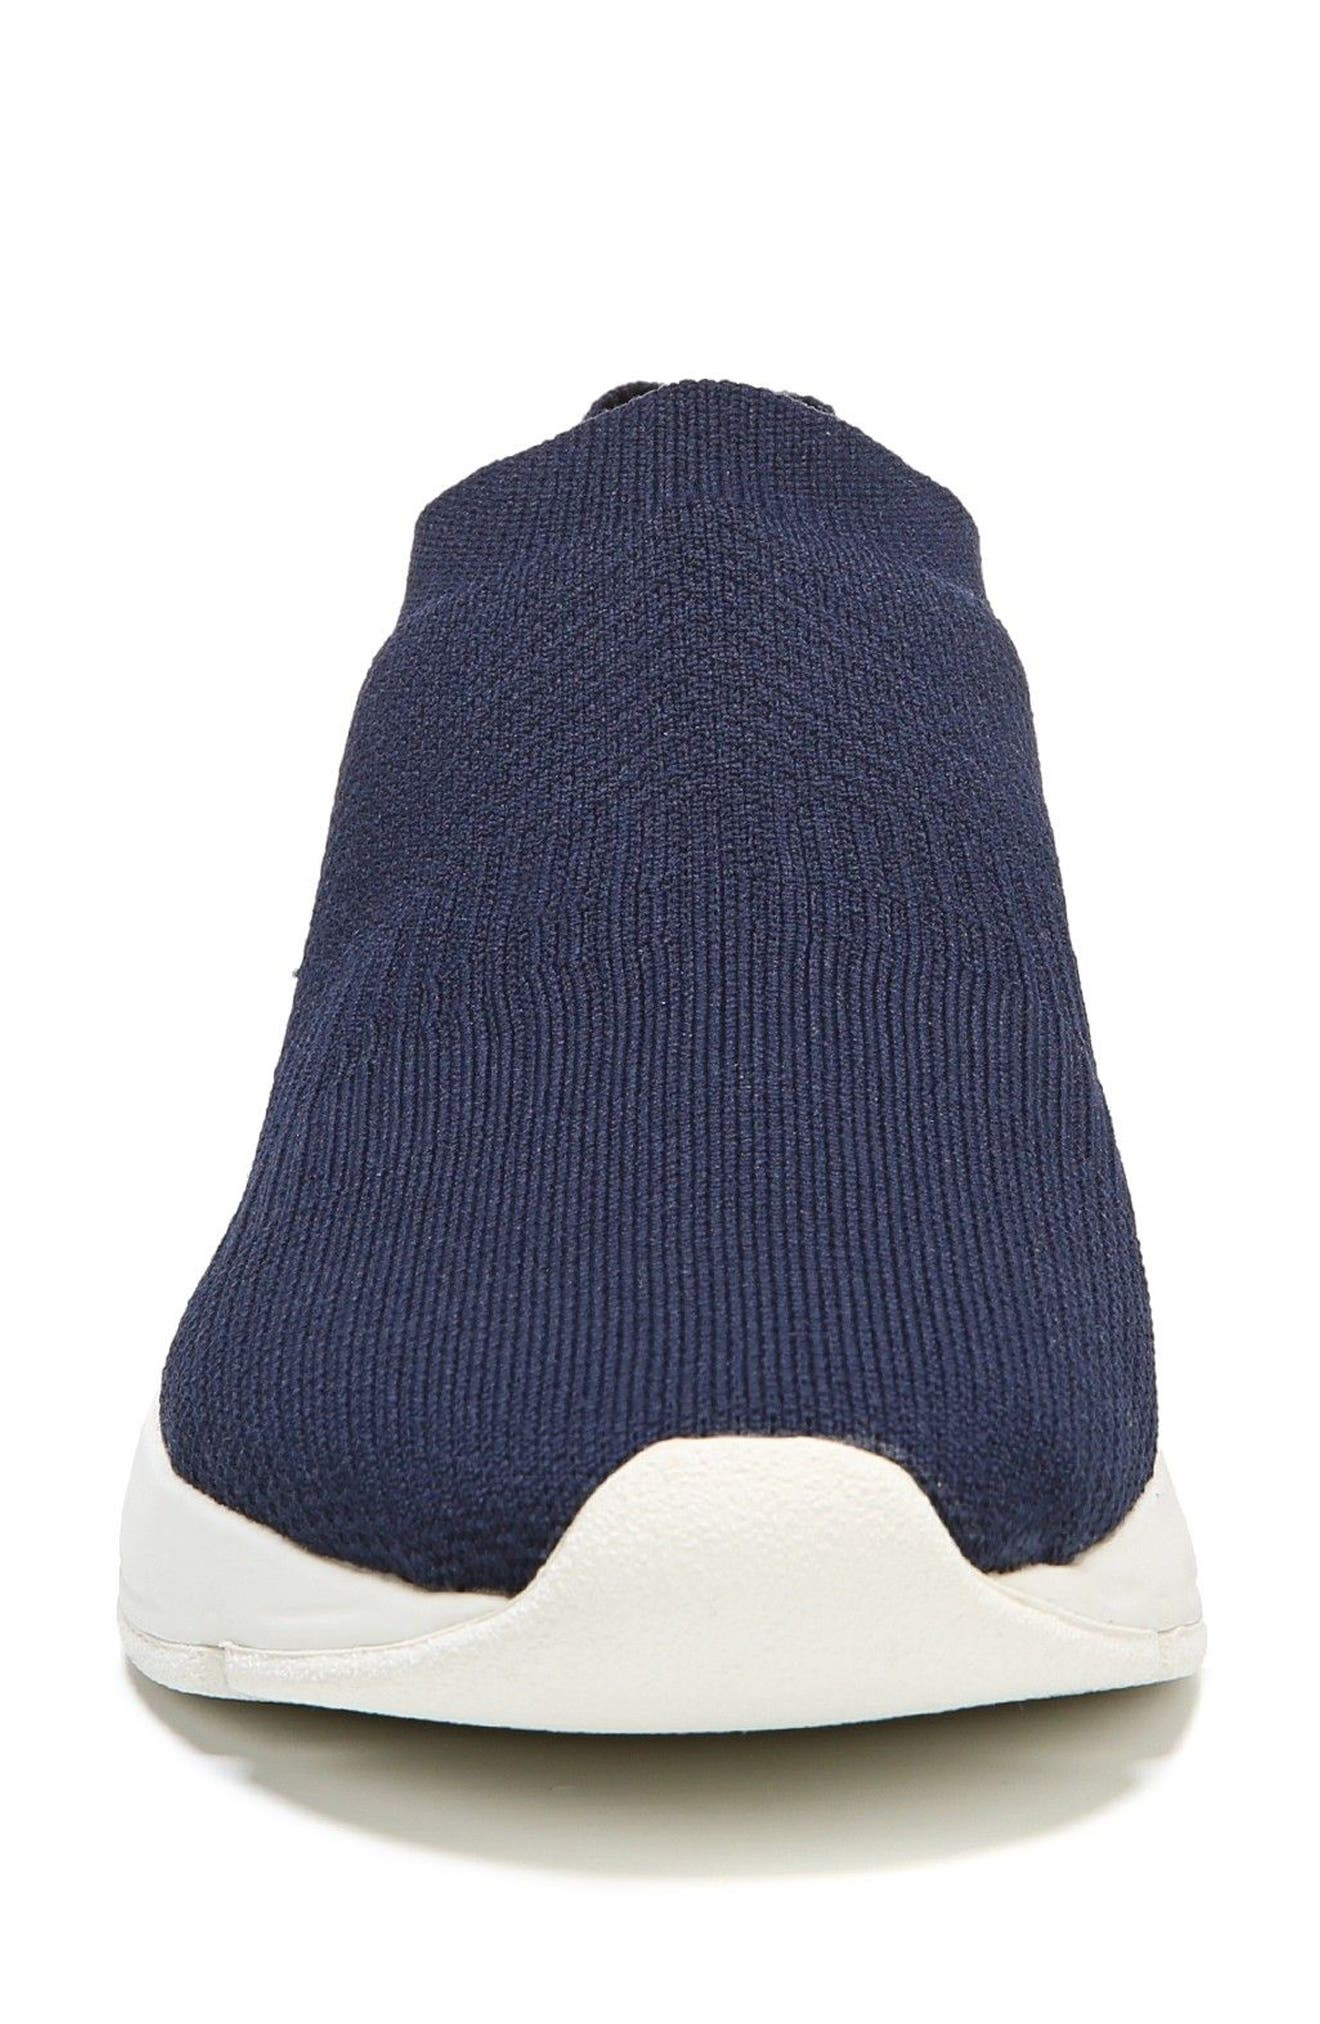 Theroux Slip-On Knit Sneaker,                             Alternate thumbnail 12, color,